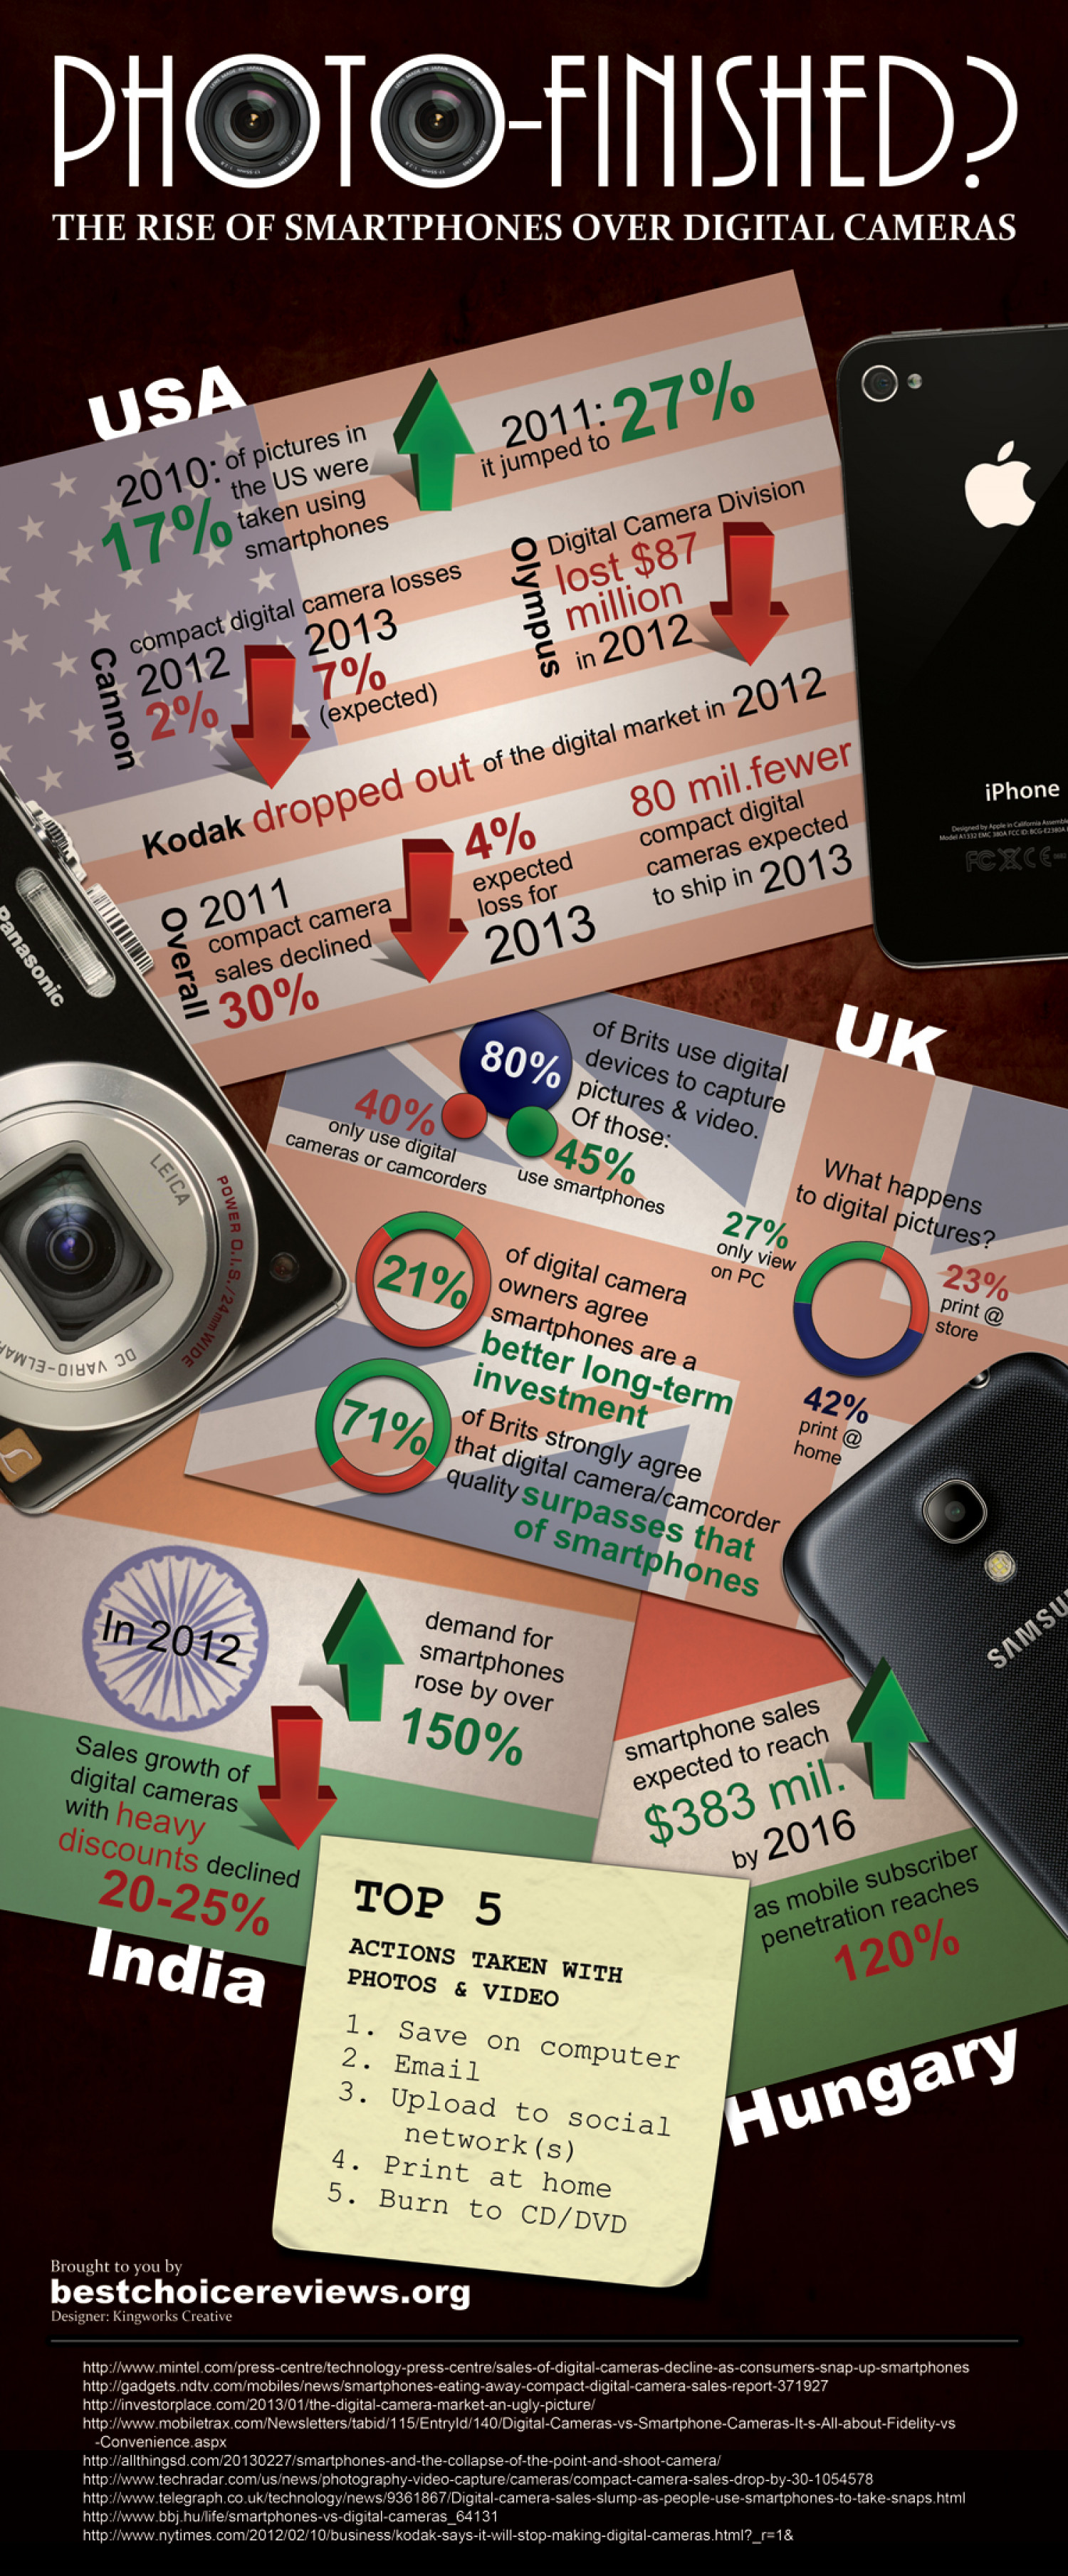 The Rise of Smartphones Over Digital Cameras Infographic